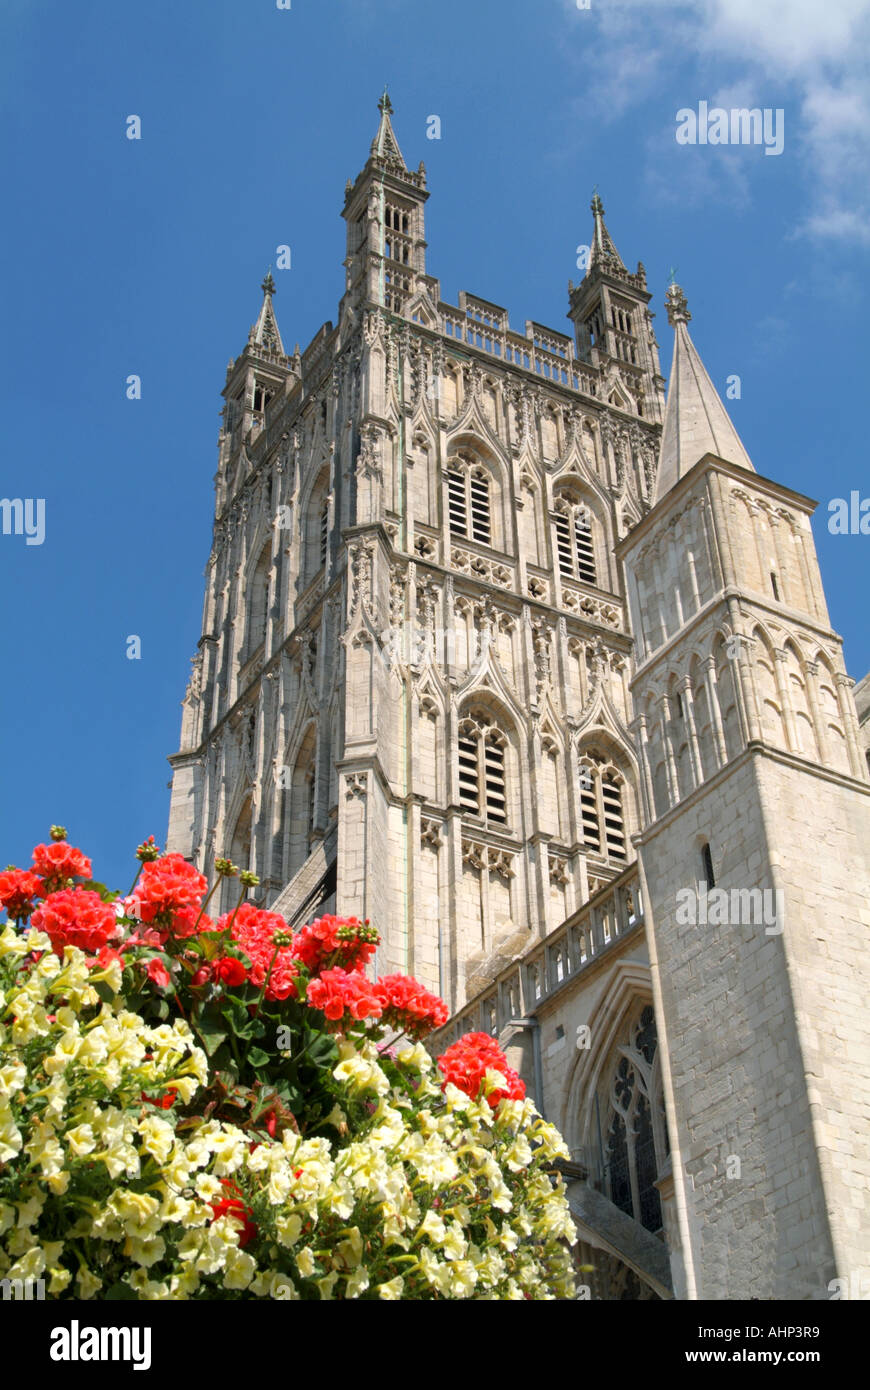 the-tower-of-gloucester-cathedral-englan